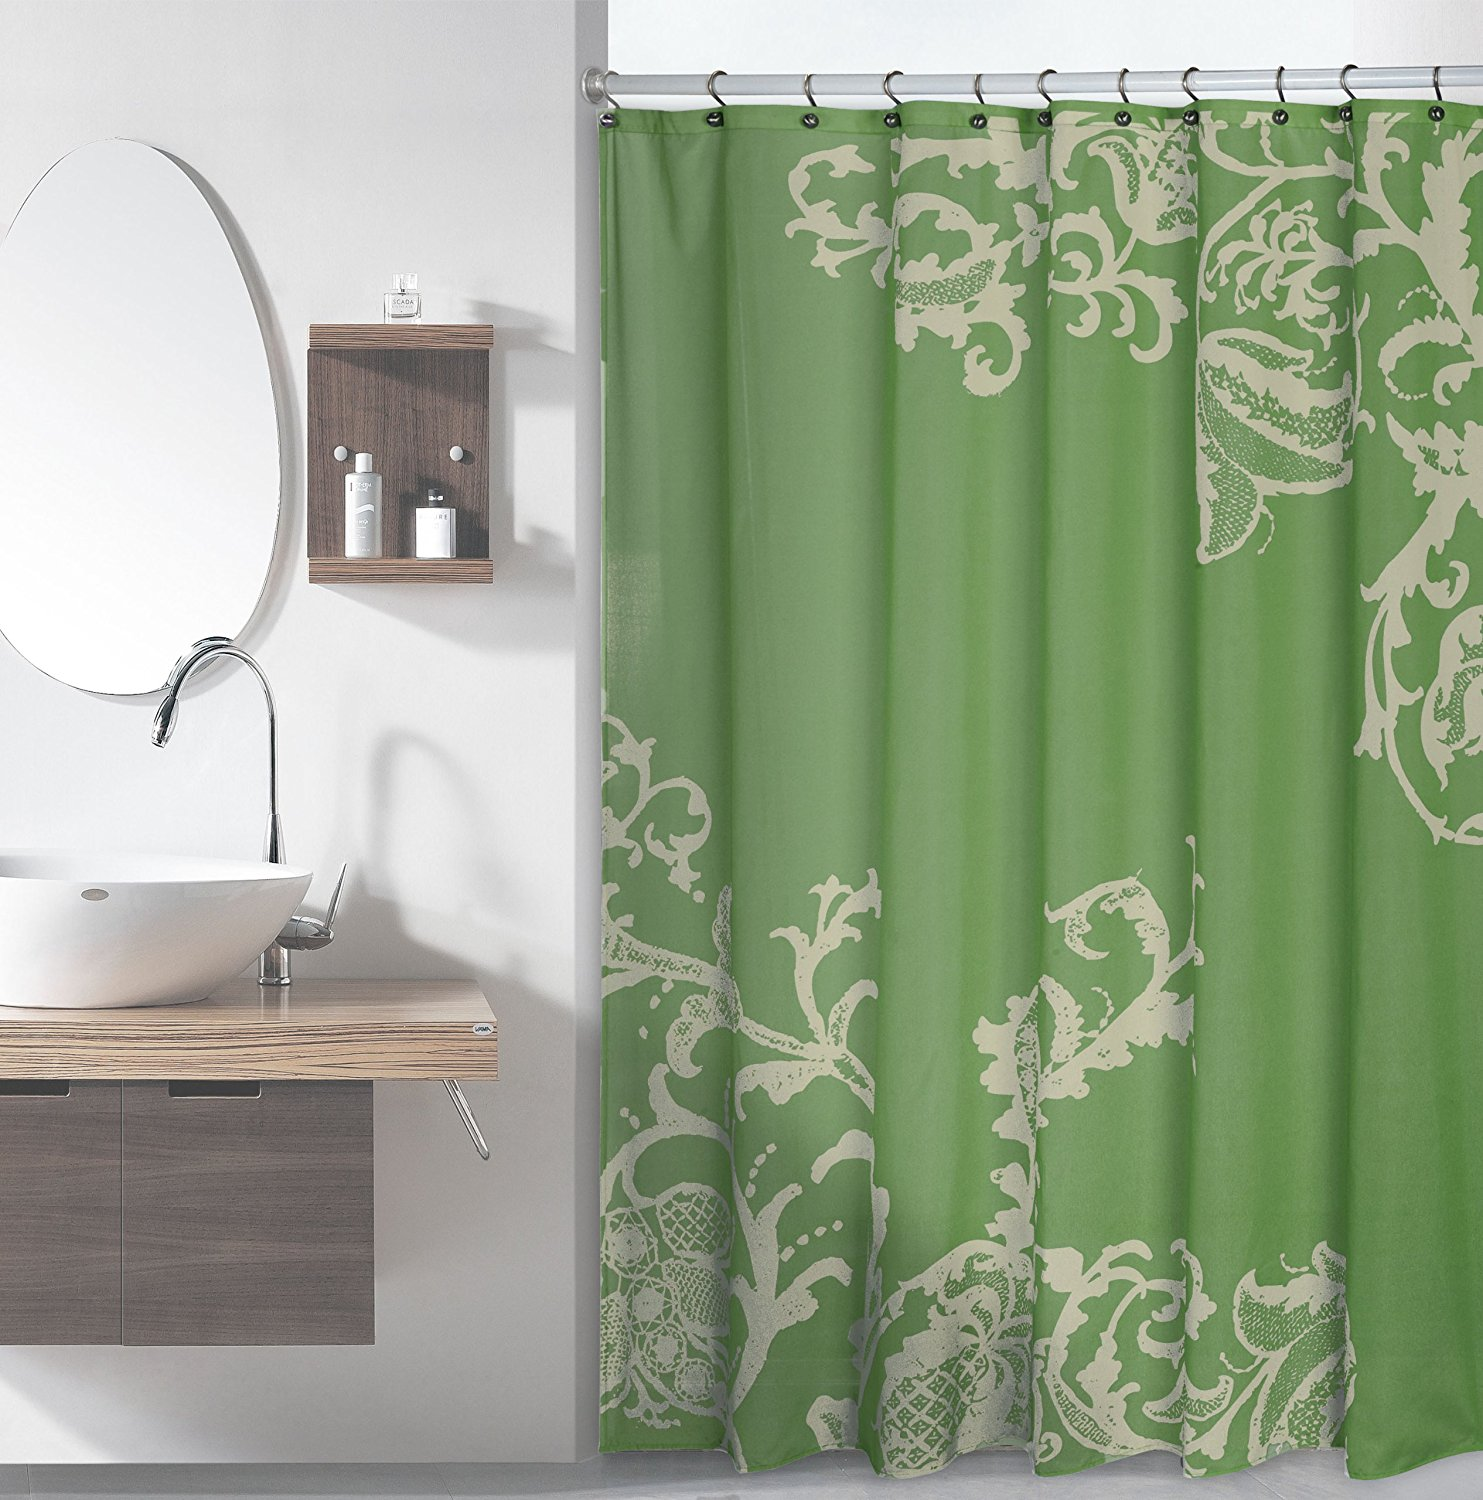 Us 18 63 Warm Tour Luxury Shower Curtain With Floral Pattern Sage Fashion Shower Curtain Hotel Bathroom With Hooks Ring72 X72 Inch In Shower